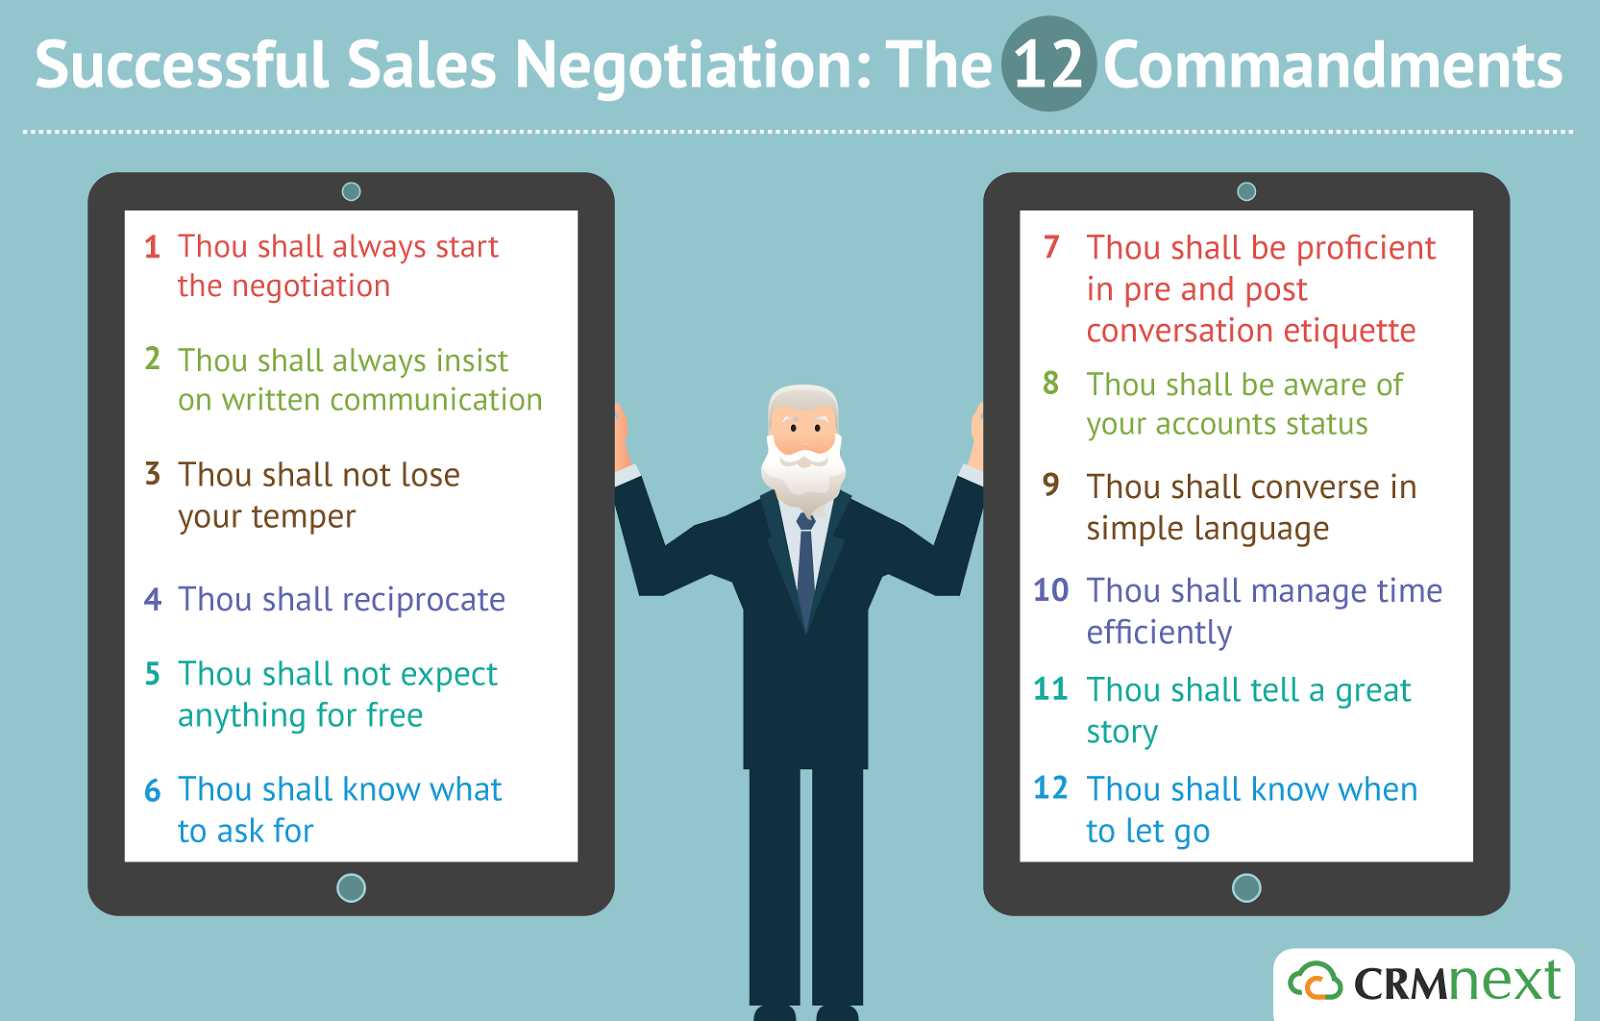 Successful Sales Negotiation: The 12 Commandments